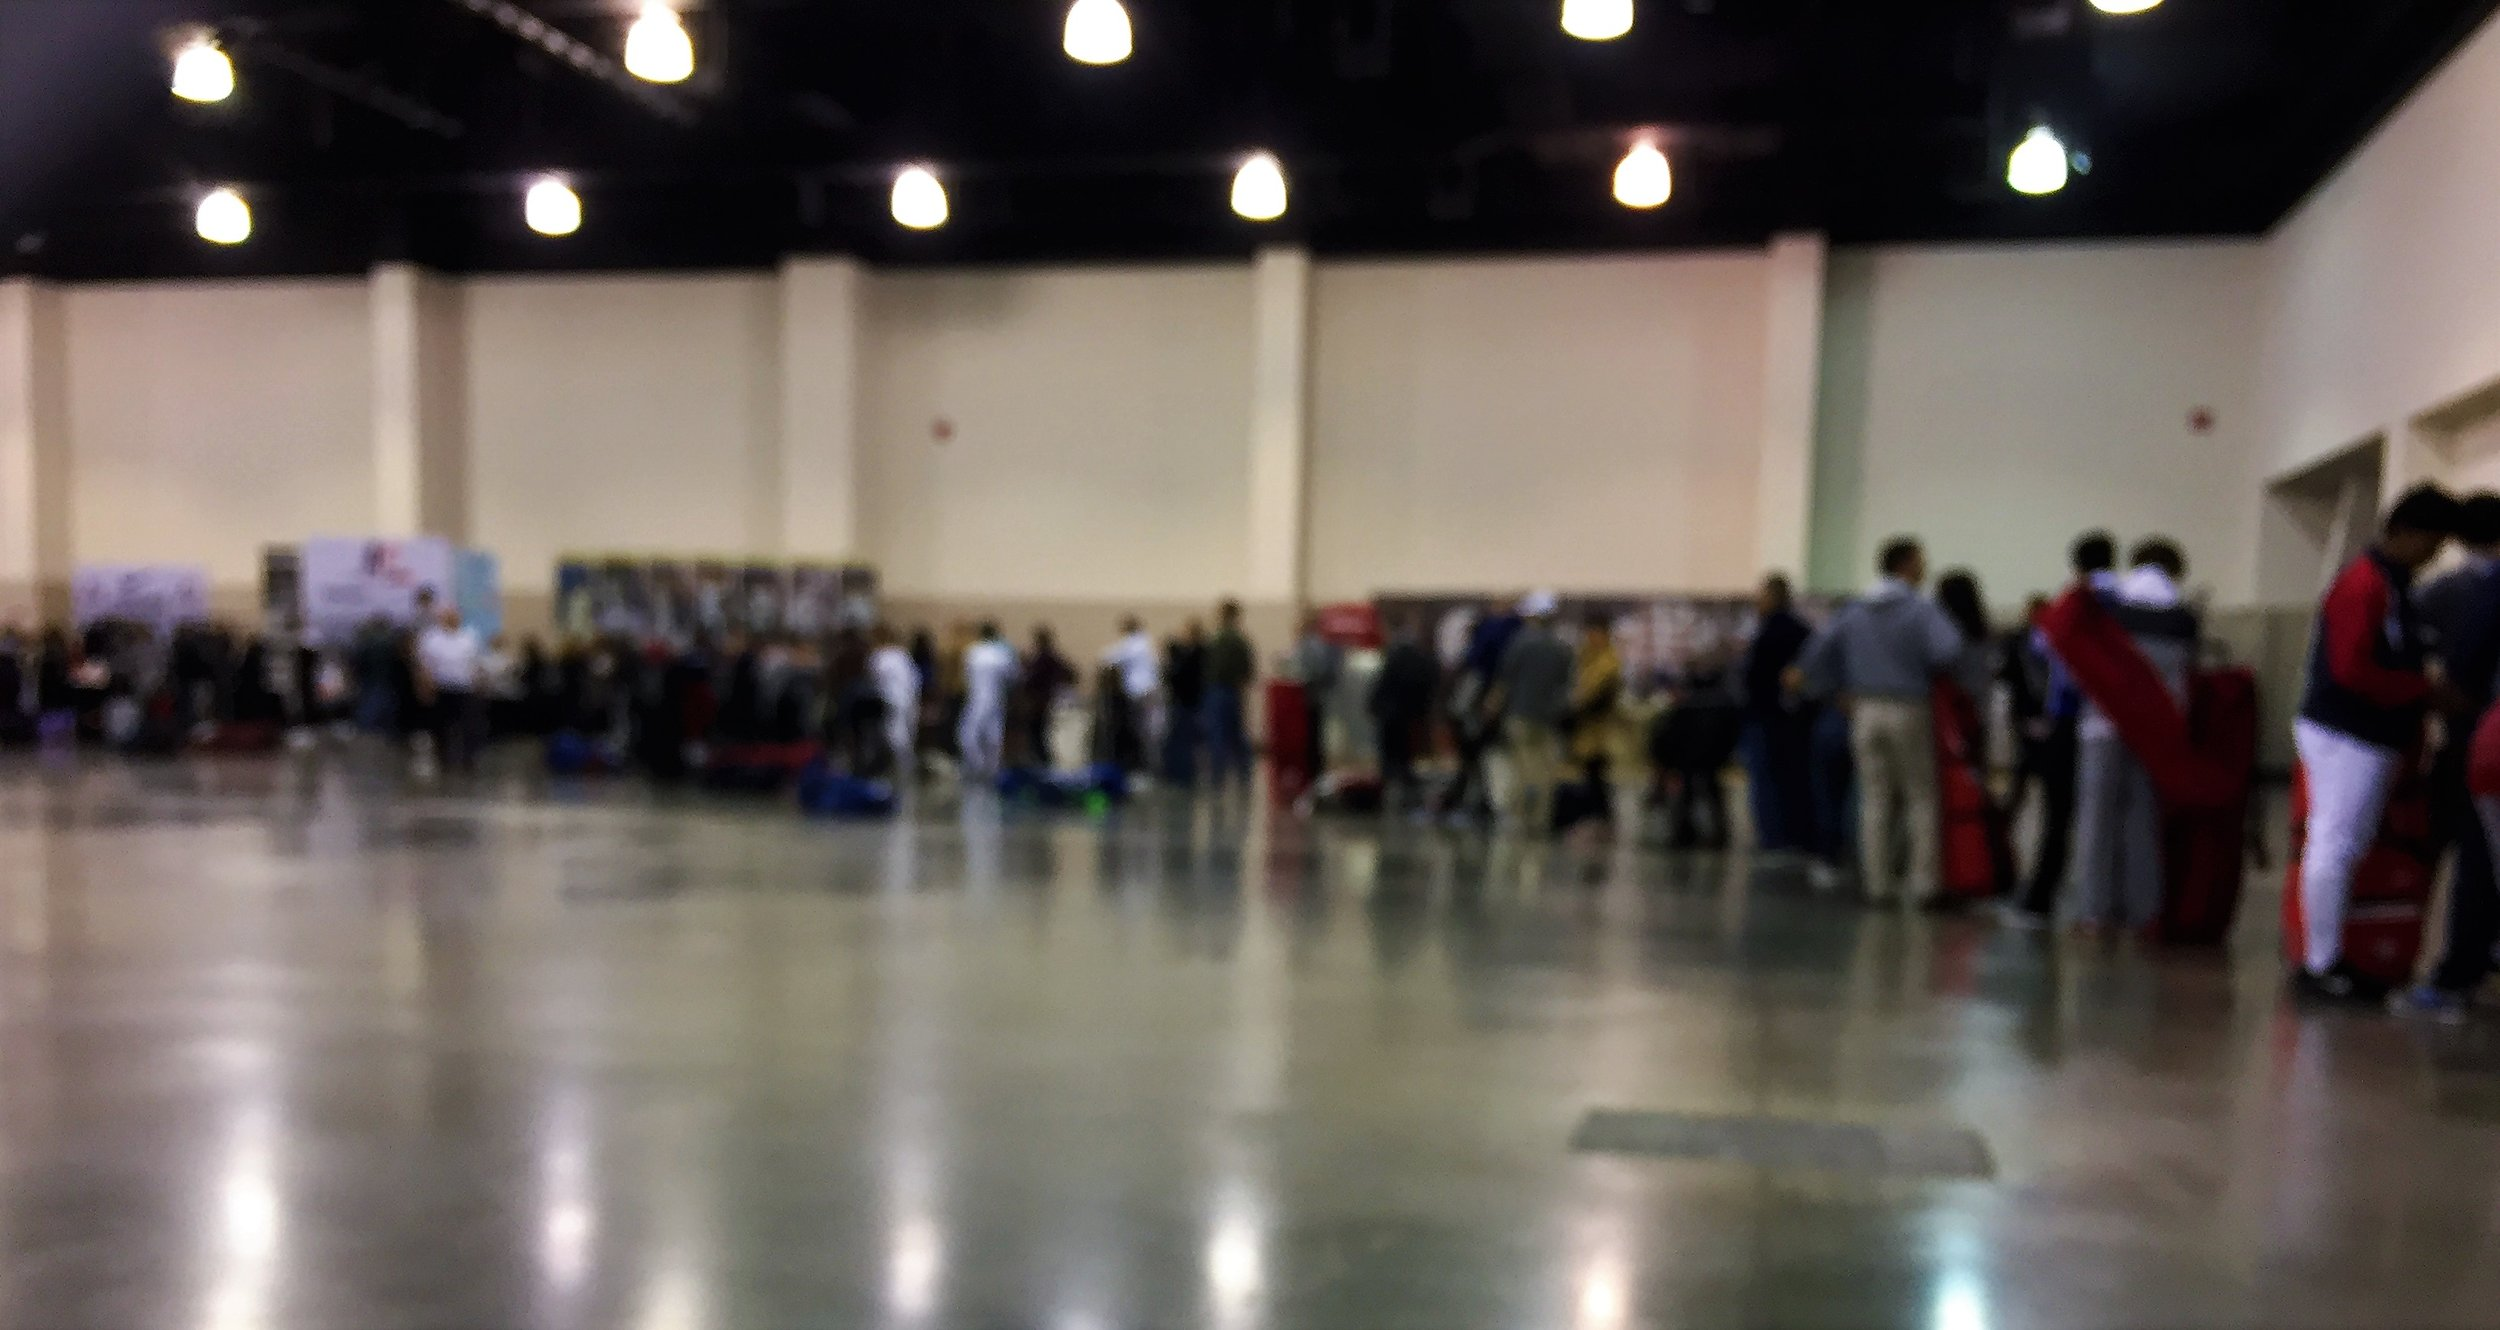 Equipment check line at 7.30am on Saturday, October 13